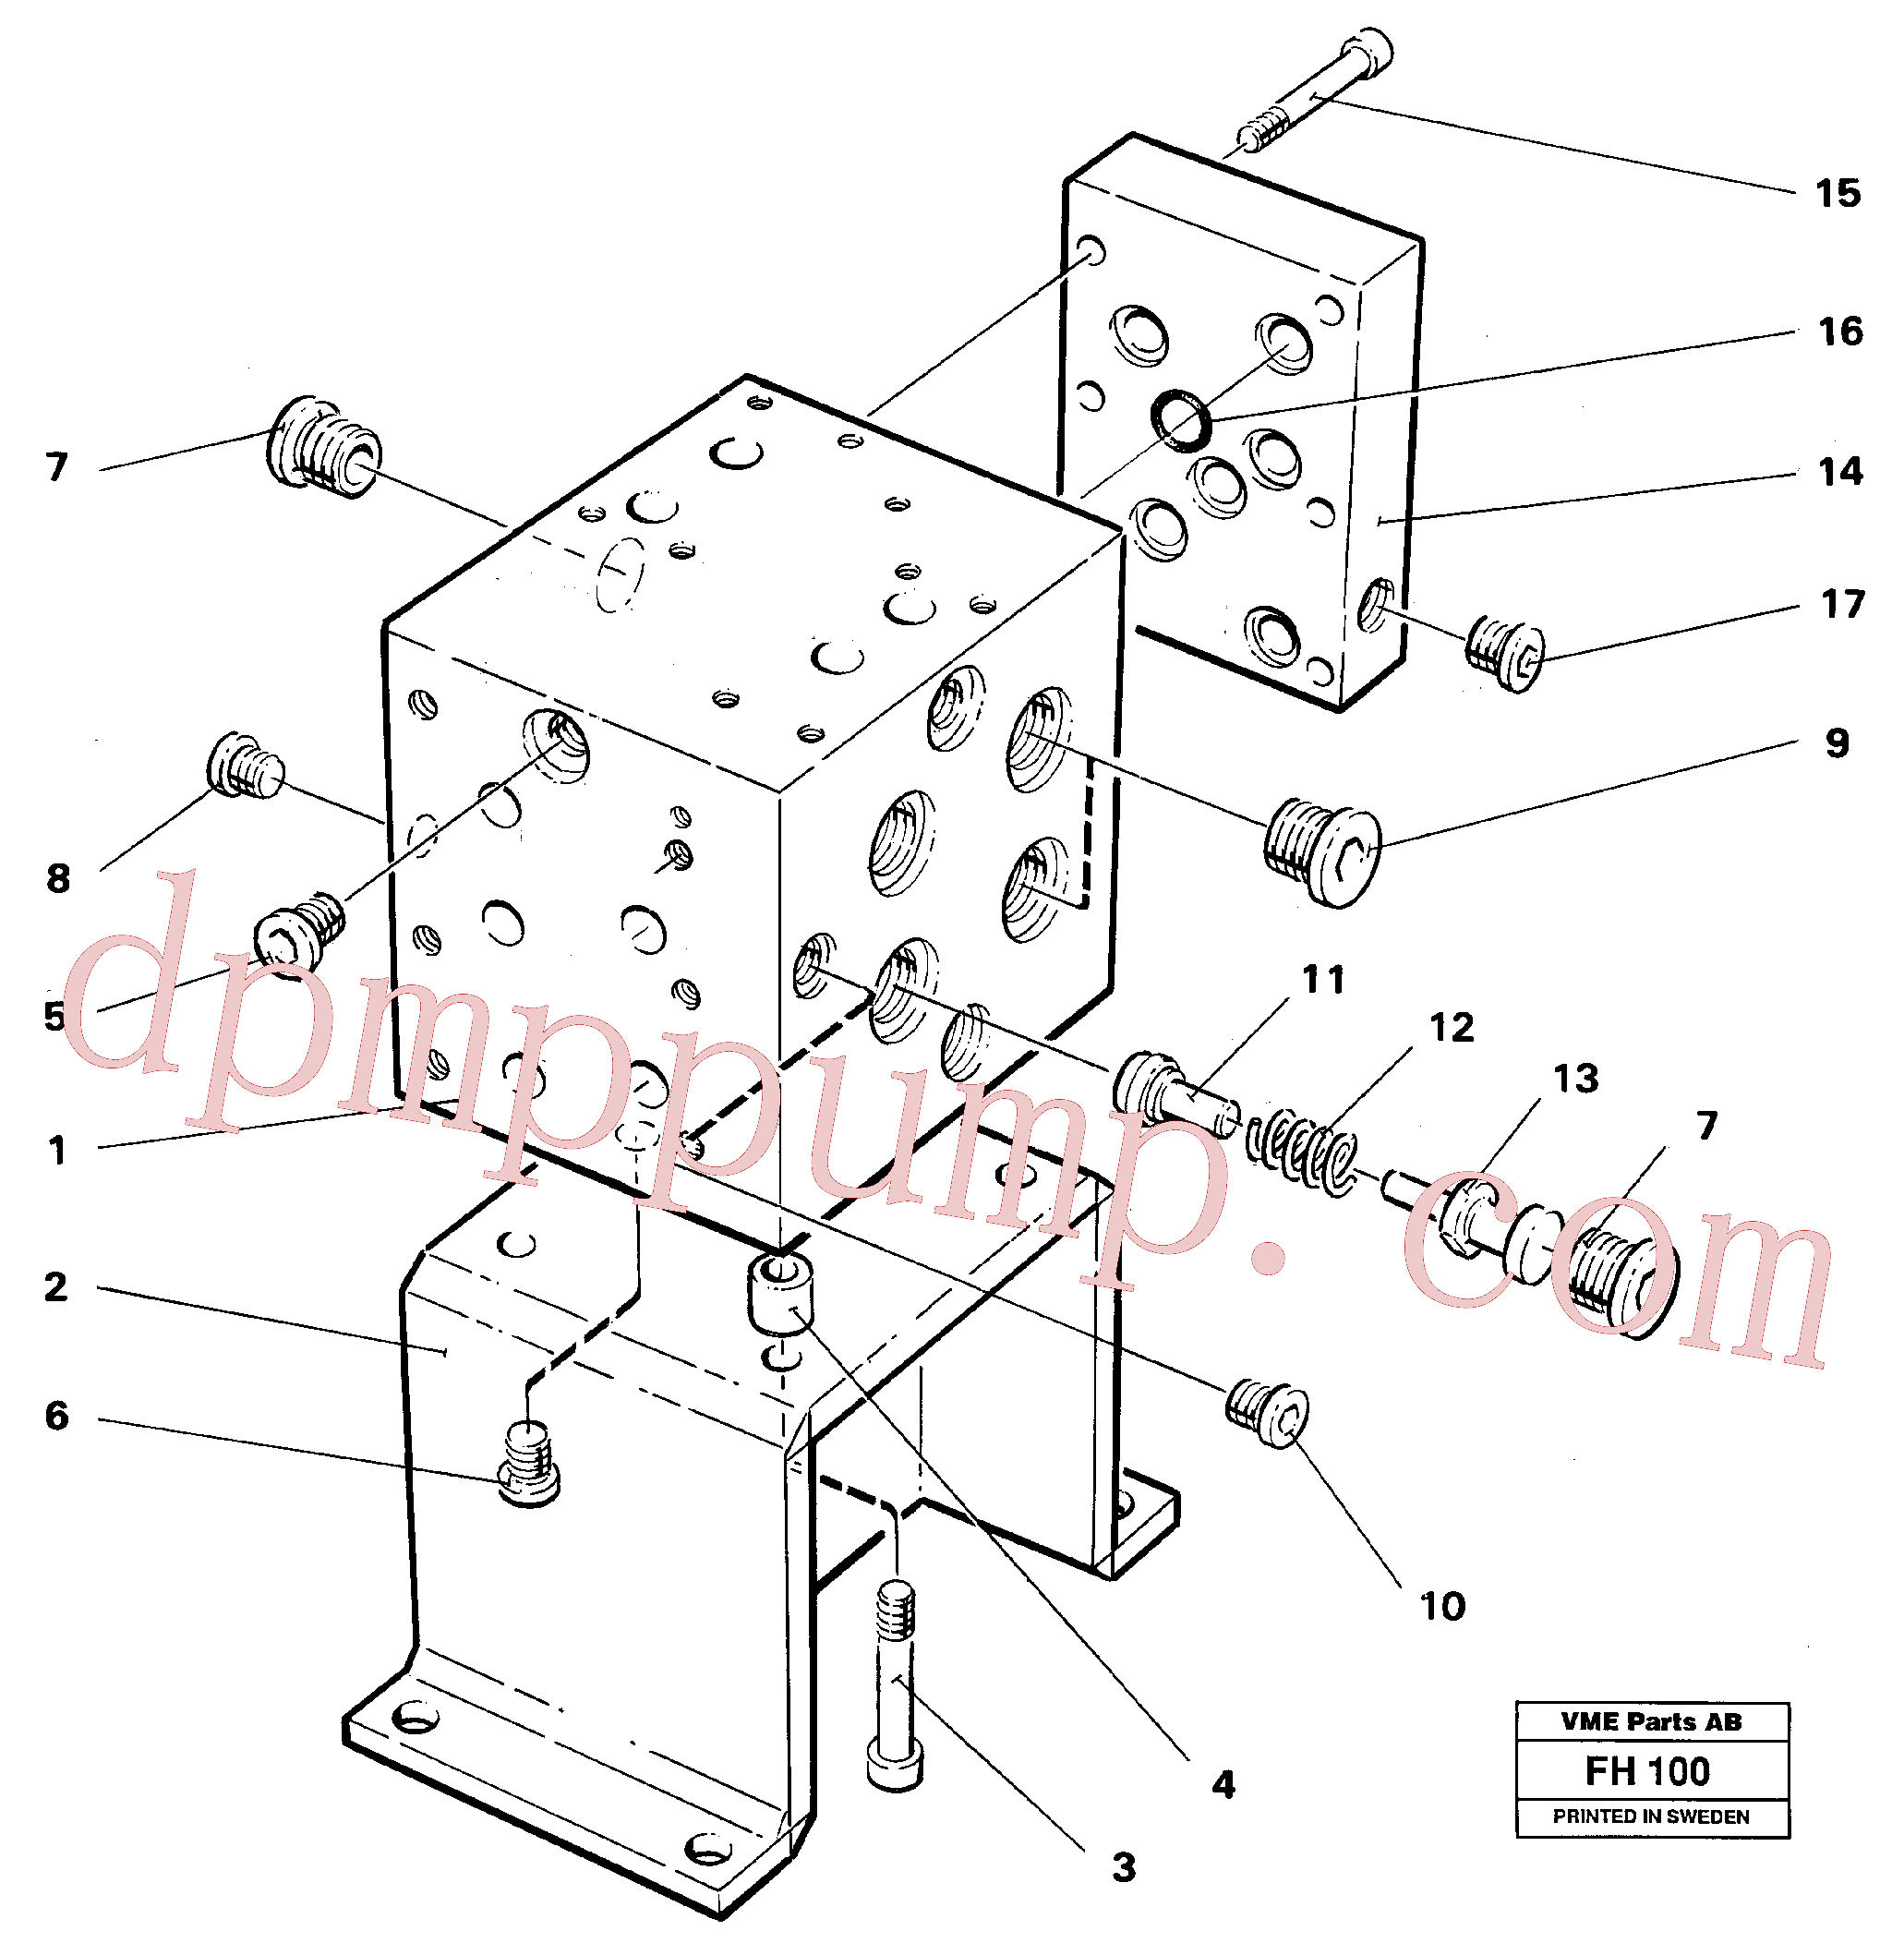 VOE14232693 for Volvo Slew valve assembly block(FH100 assembly)